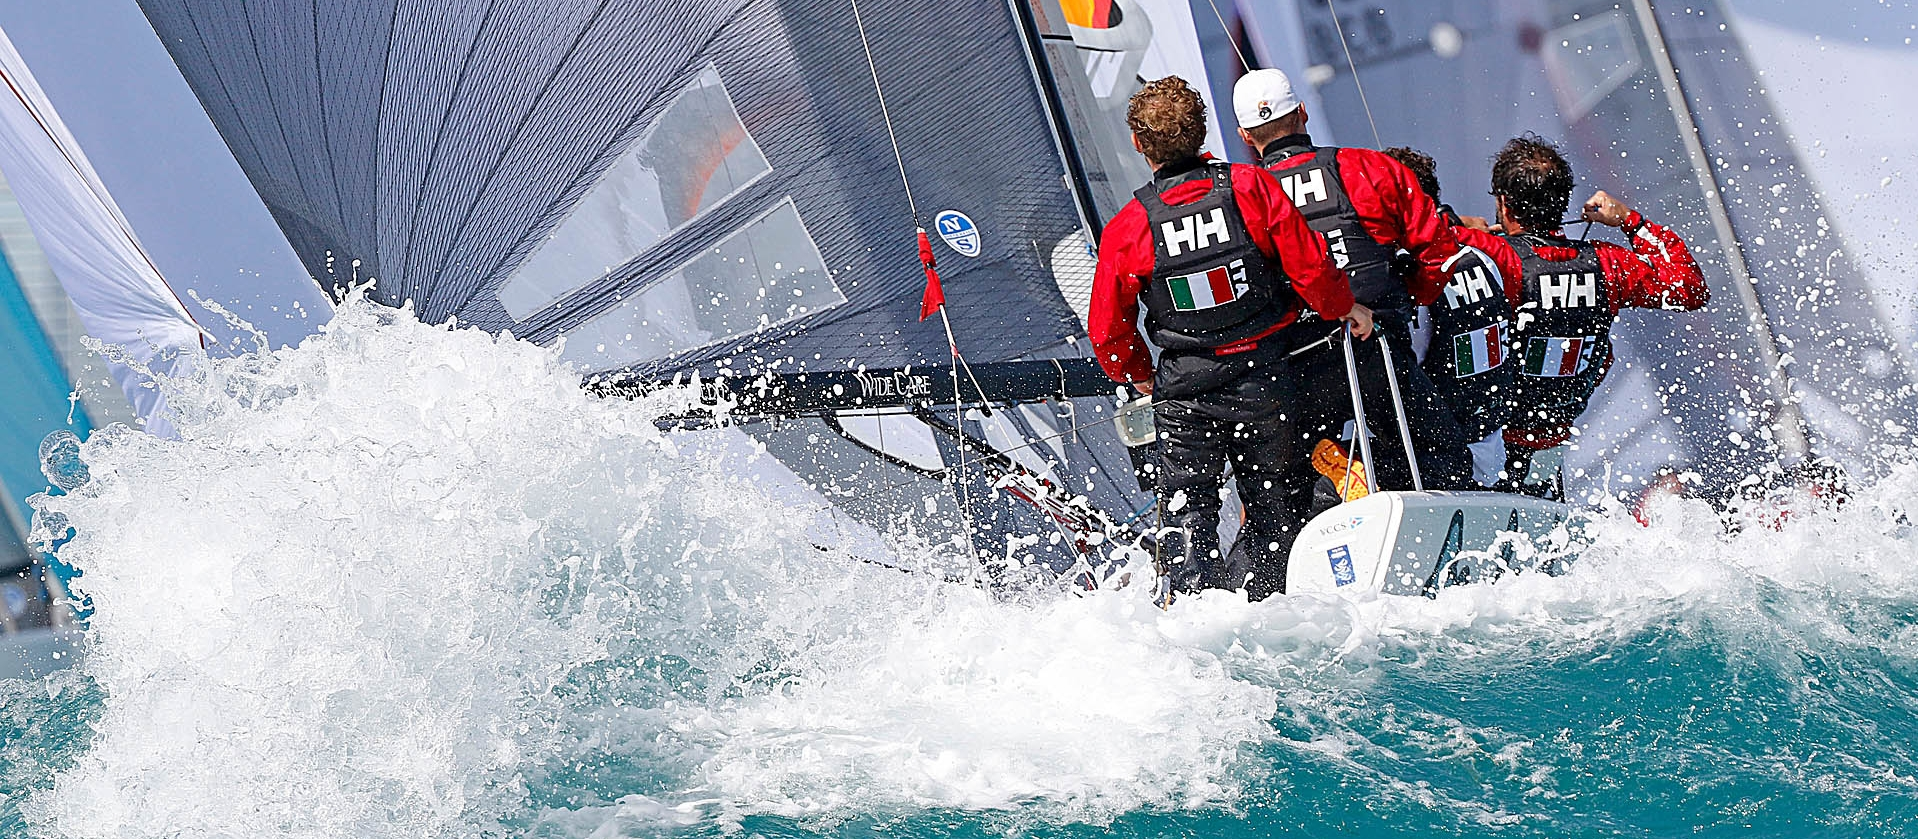 Bombarda ITA841 of Andrea Pozzi at the 2016 World Championship in Miami, USA